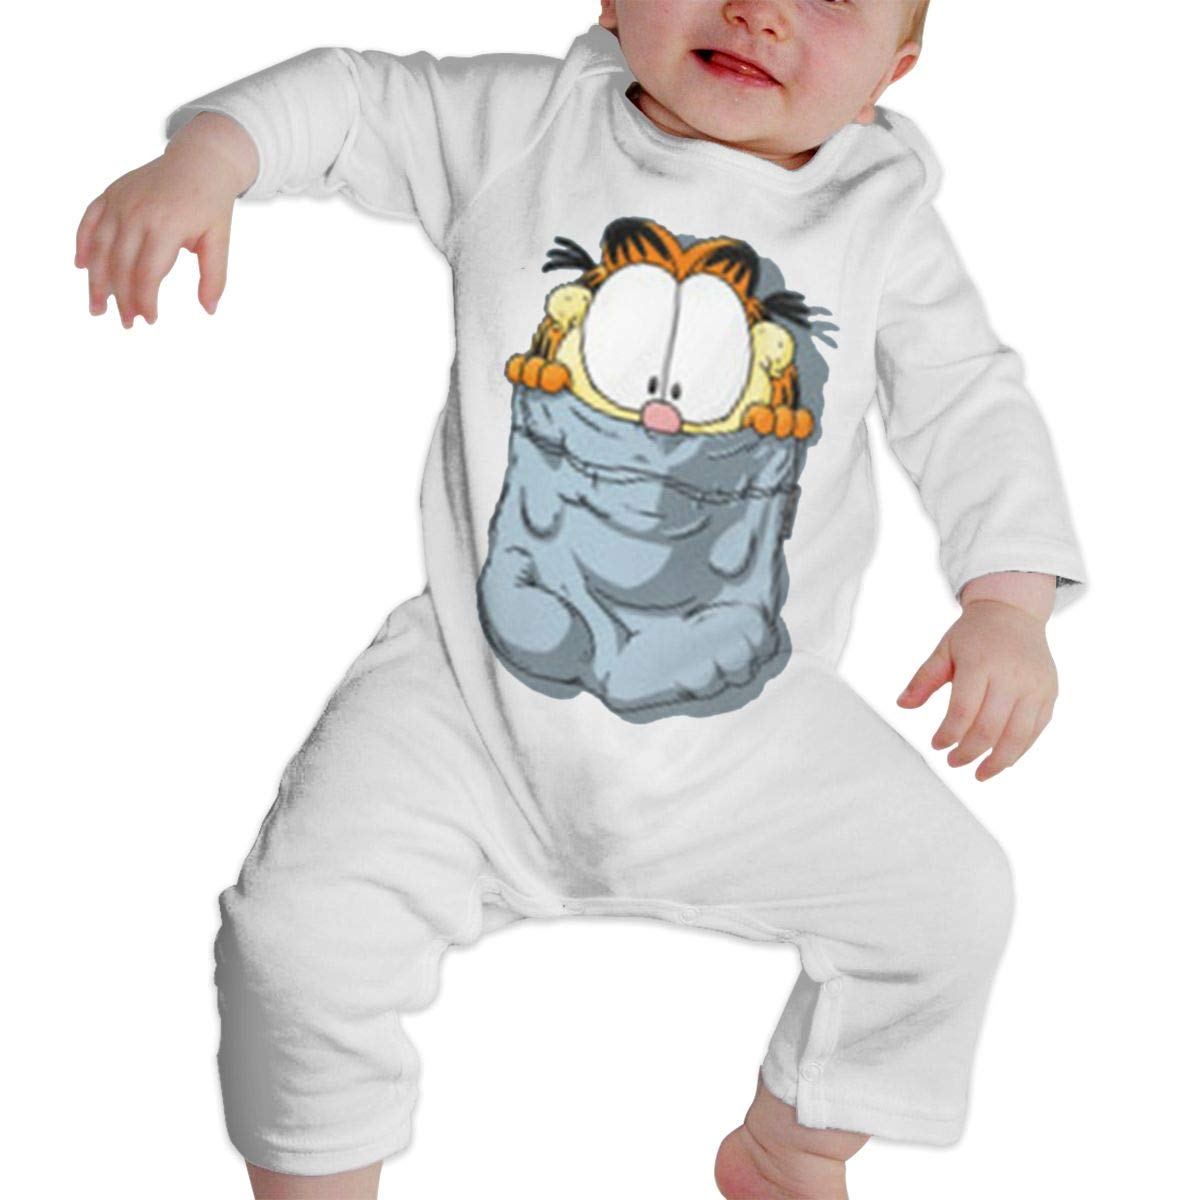 SININIDR Newborn Jumpsuit Infant Baby Girls Garfield Inside Pocket Long-Sleeve Bodysuit Playsuit Outfits Clothes Black